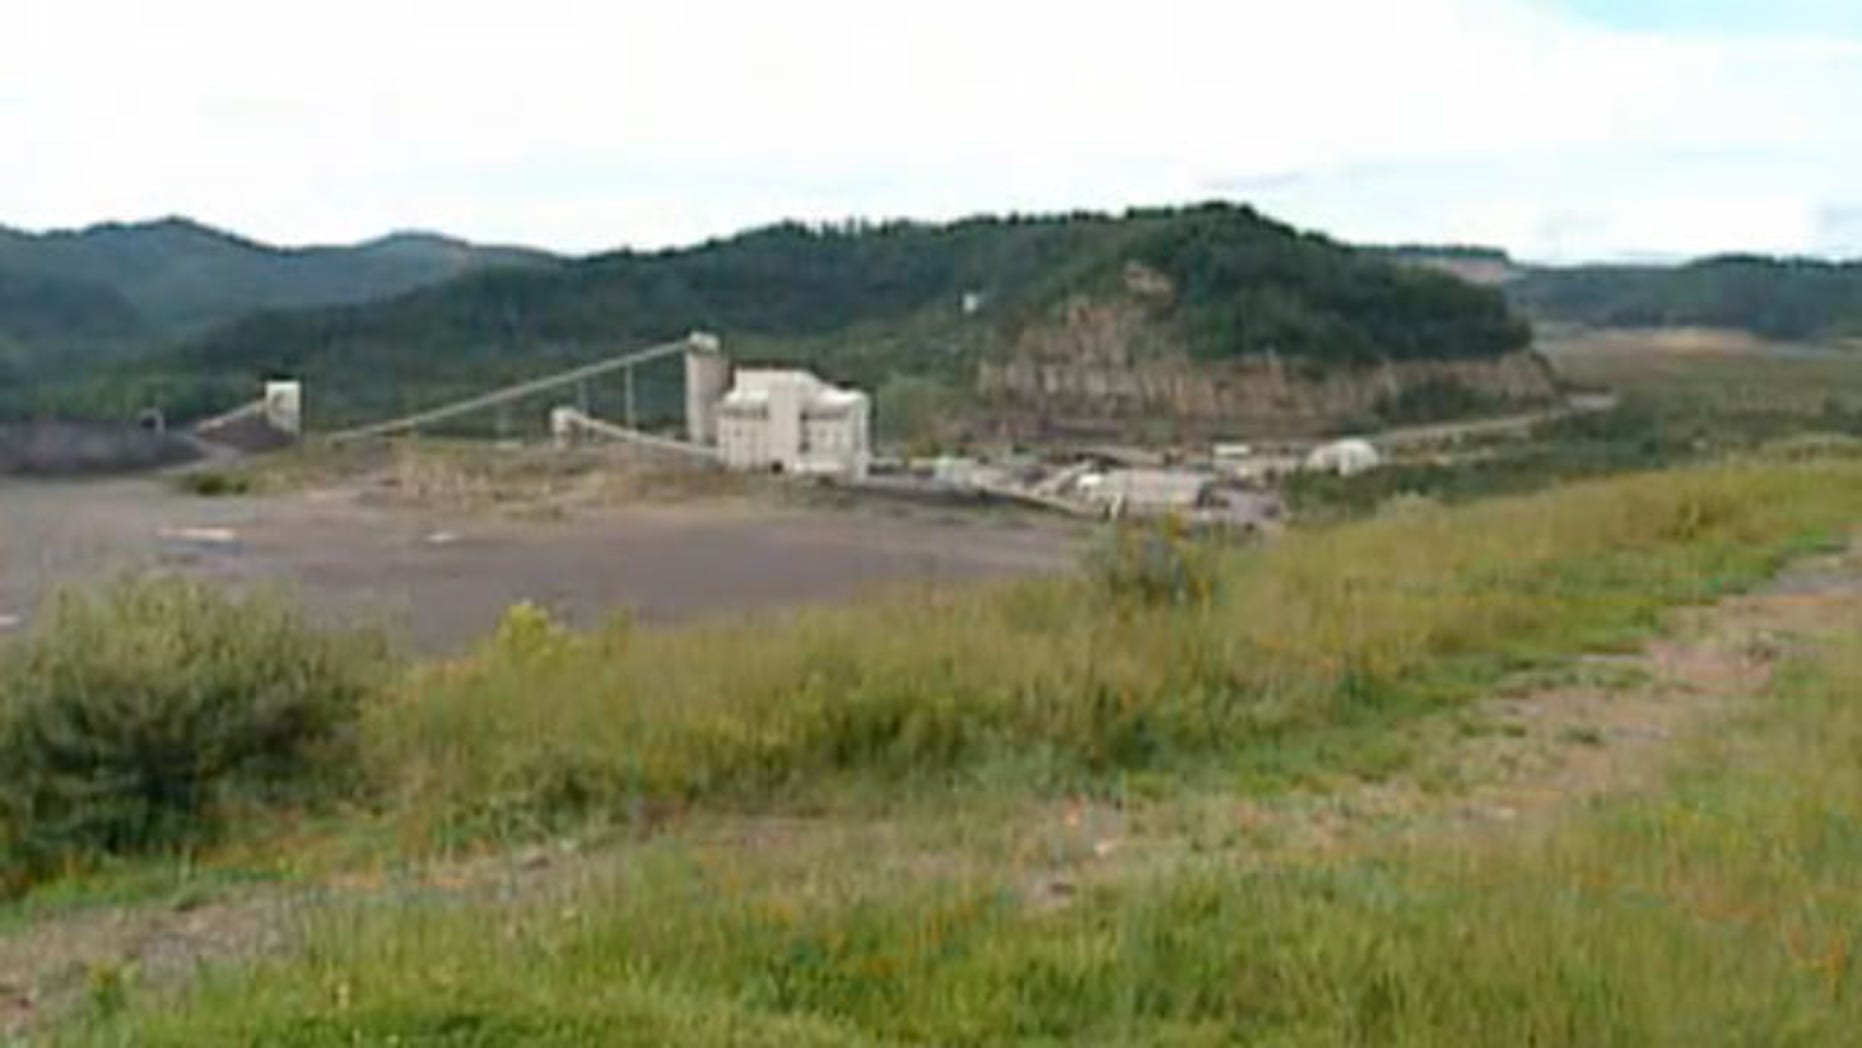 Shown here is an Appalachian coal mine, featured in a video produced by FACES of Coal.